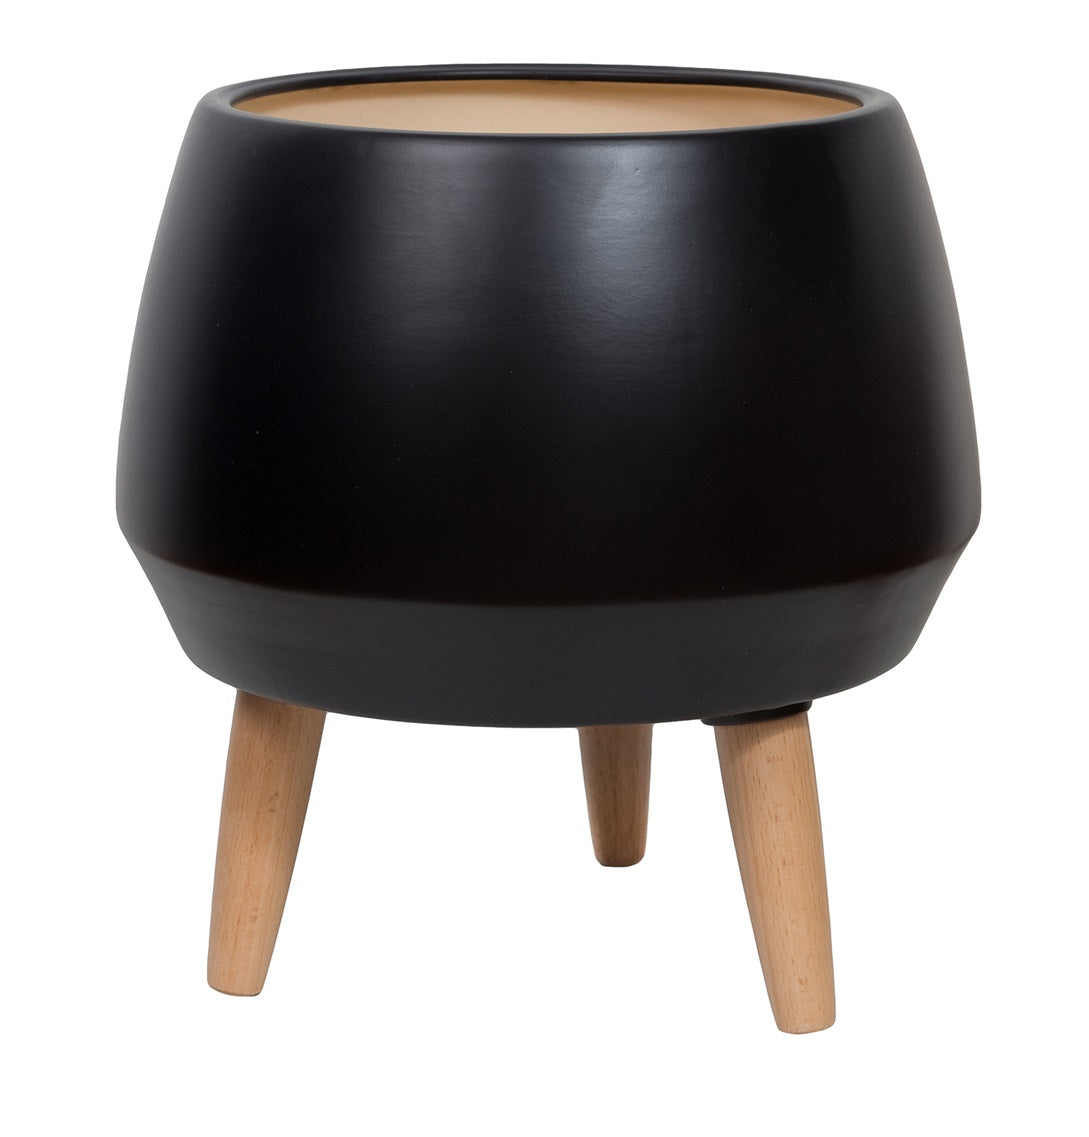 Circa Pot Planter – Black